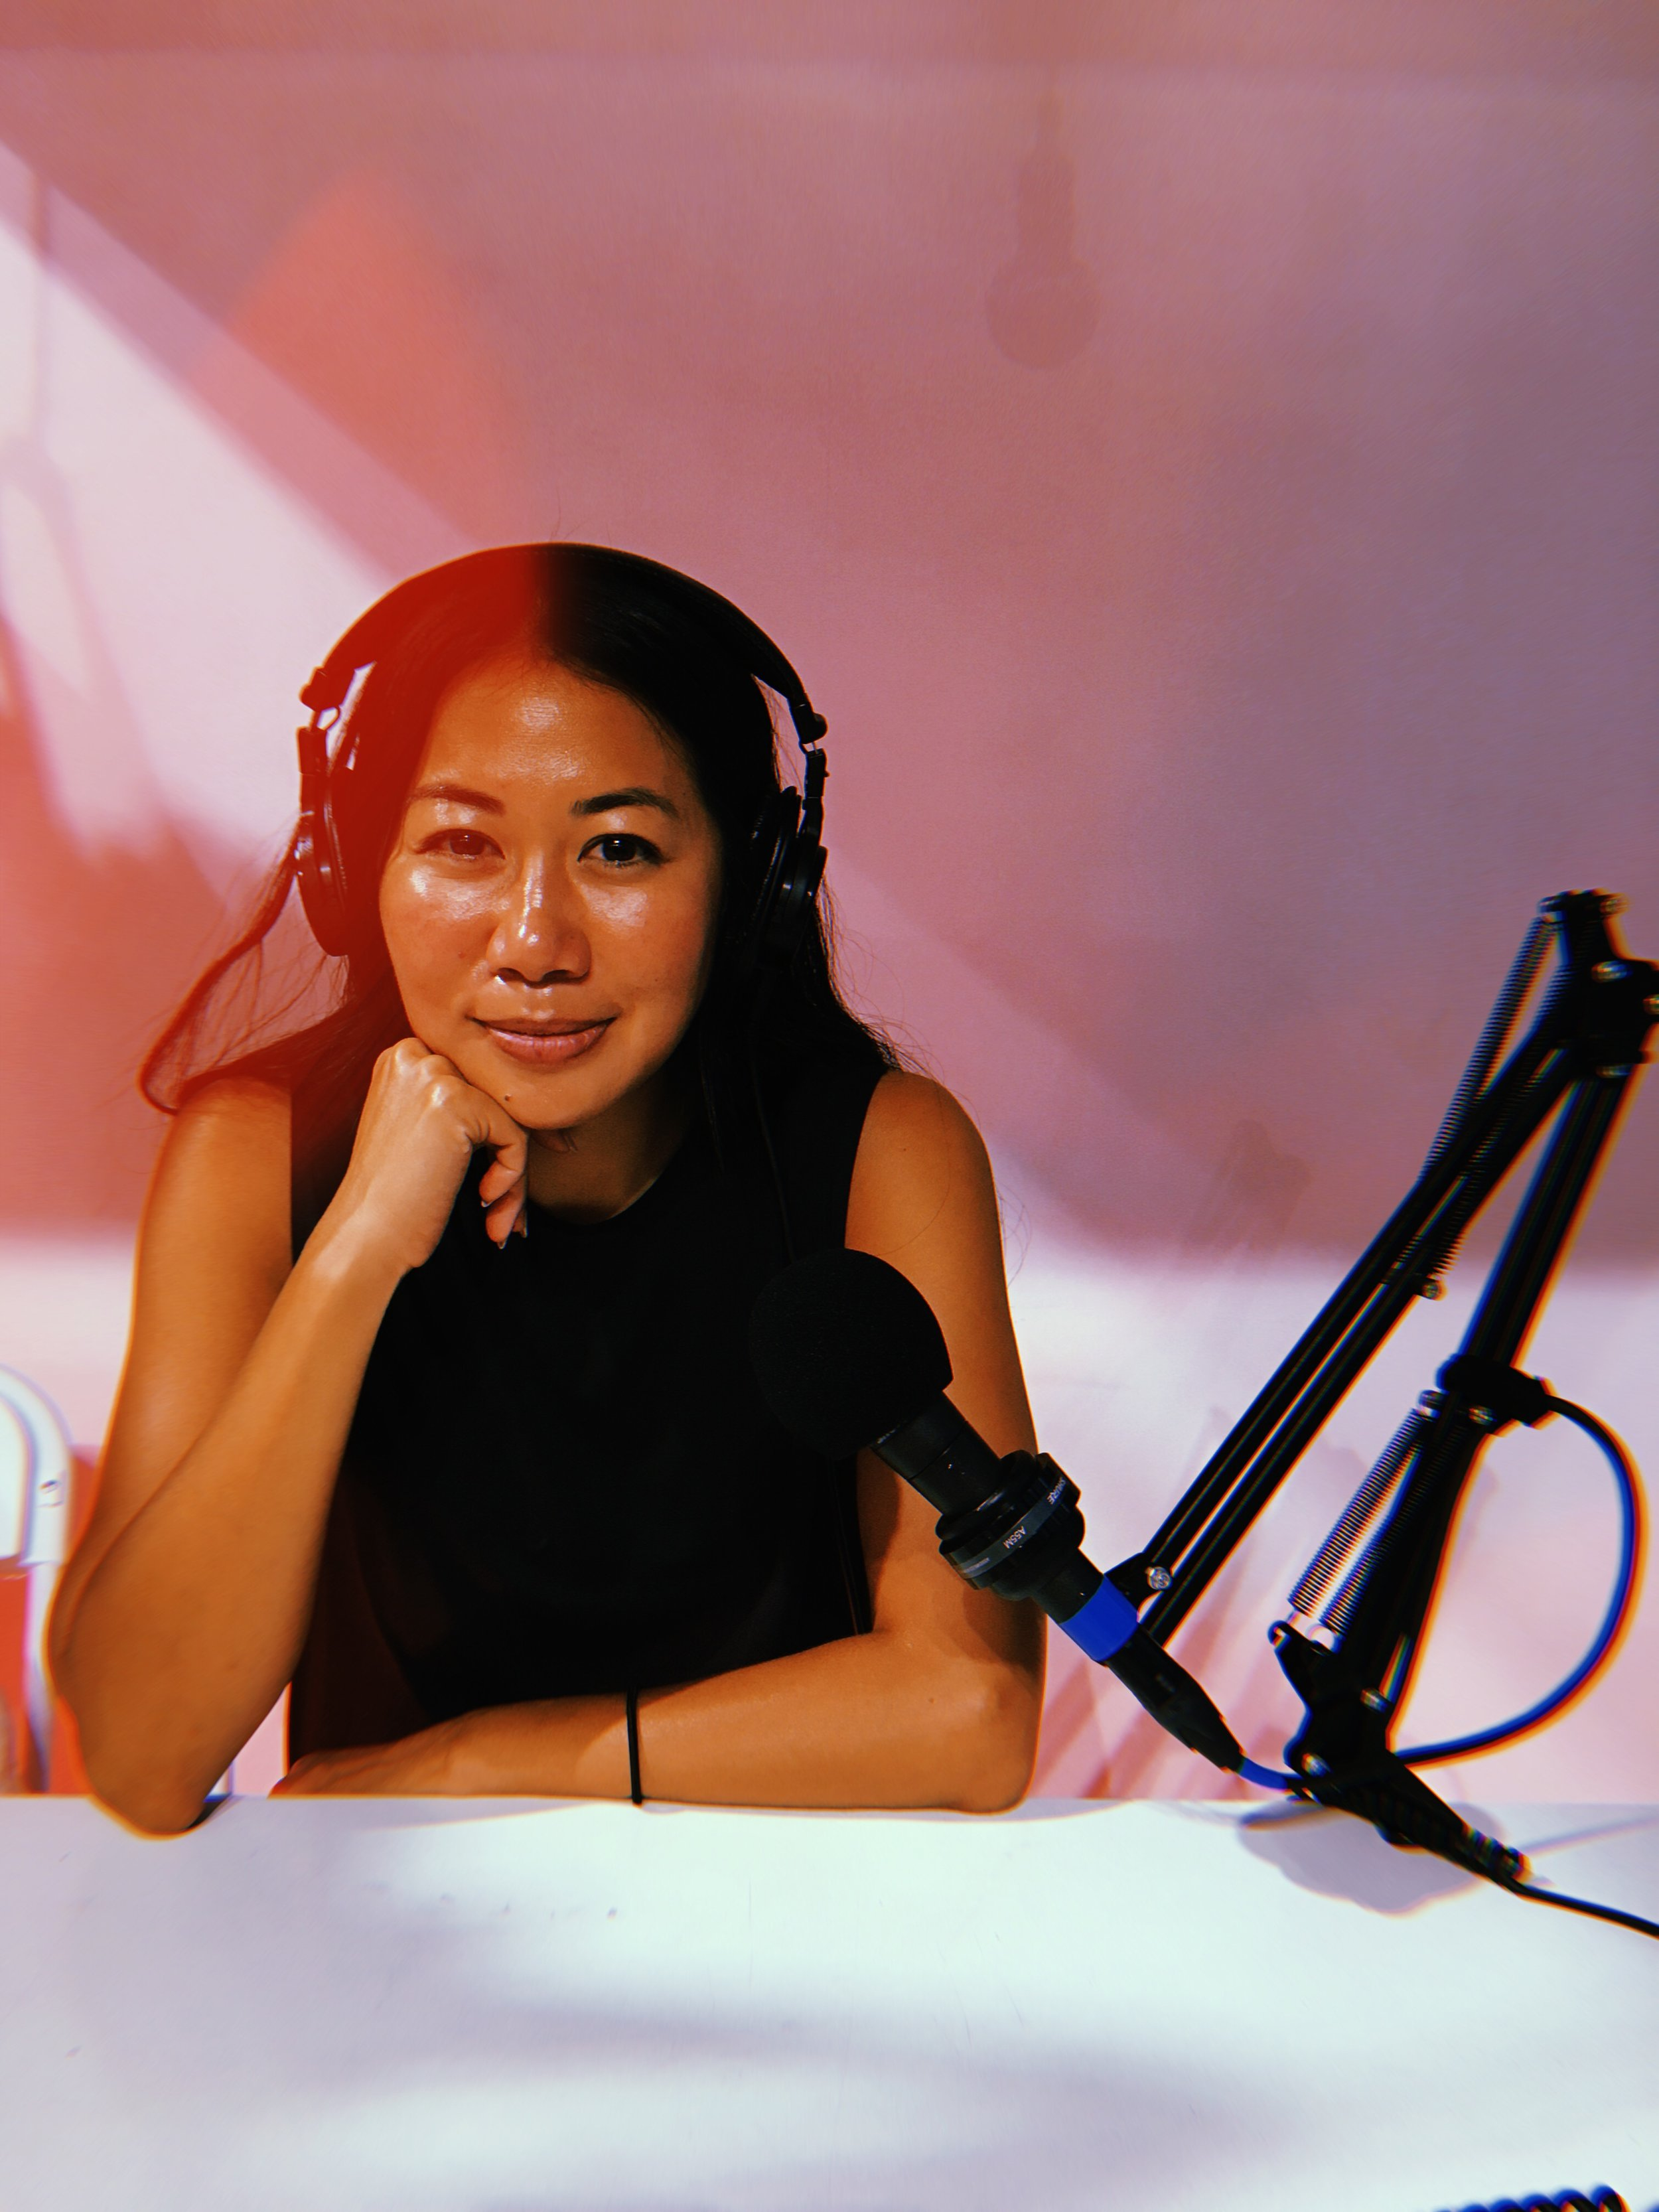 Here you see Stephanie inside the audio studio at Canal Street Market. We recorded this episode in early September 2018.